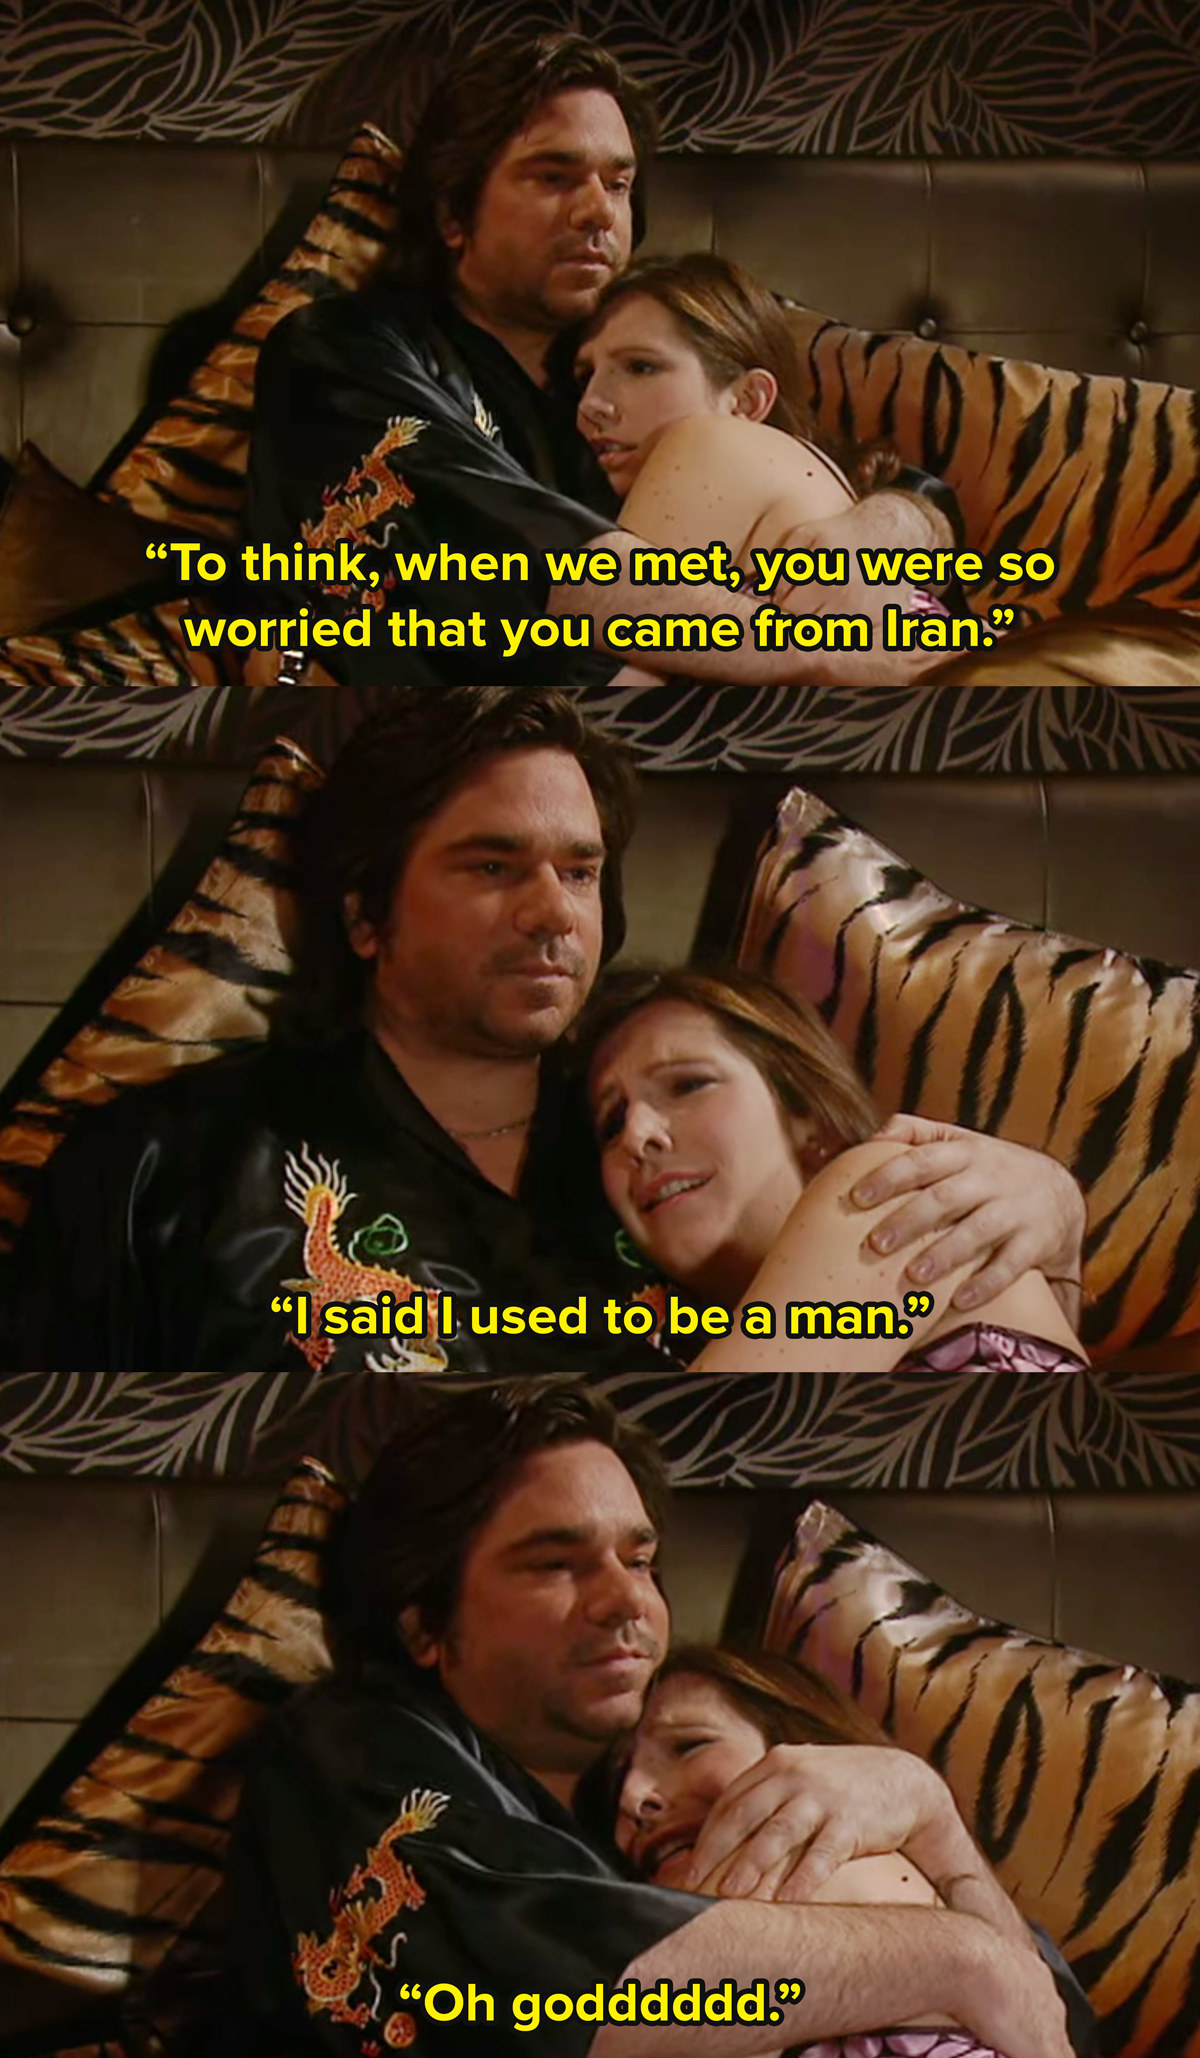 Douglas from The IT Crowd lies in bed with a woman named April and hugs her. He says to think you worried when we met you were from Iran. She says no, I said I used to be a man and he replies oh God